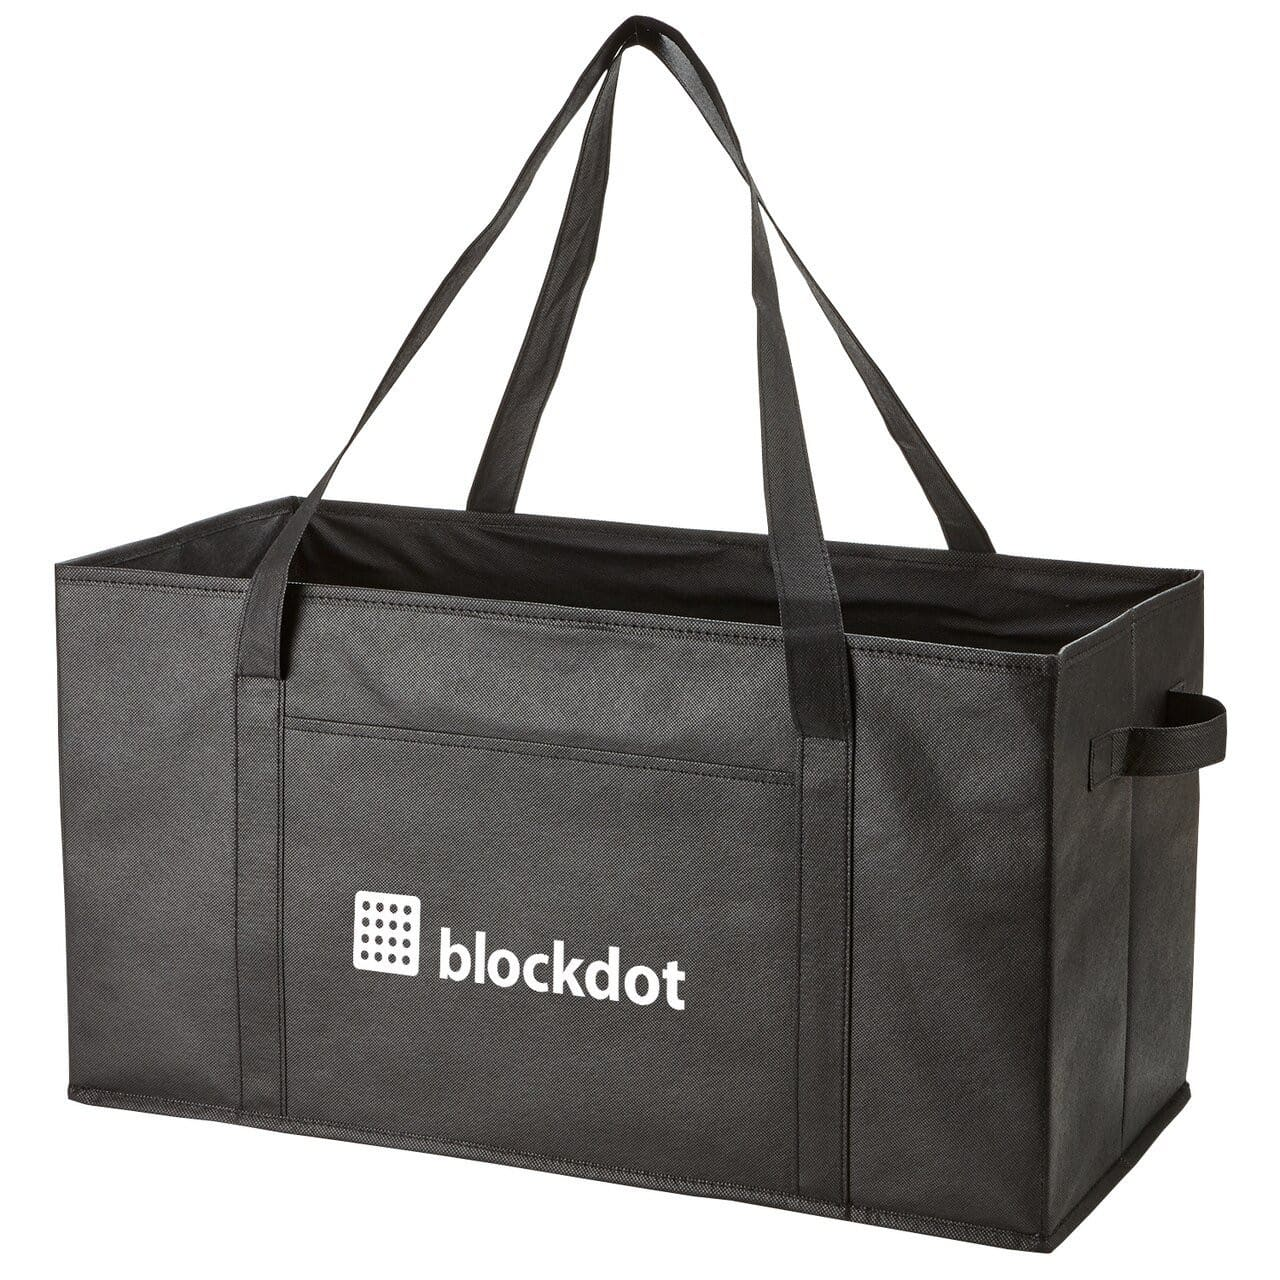 Organize-It?? Non-Woven Storage Tote - Black:9579.preview.jpg